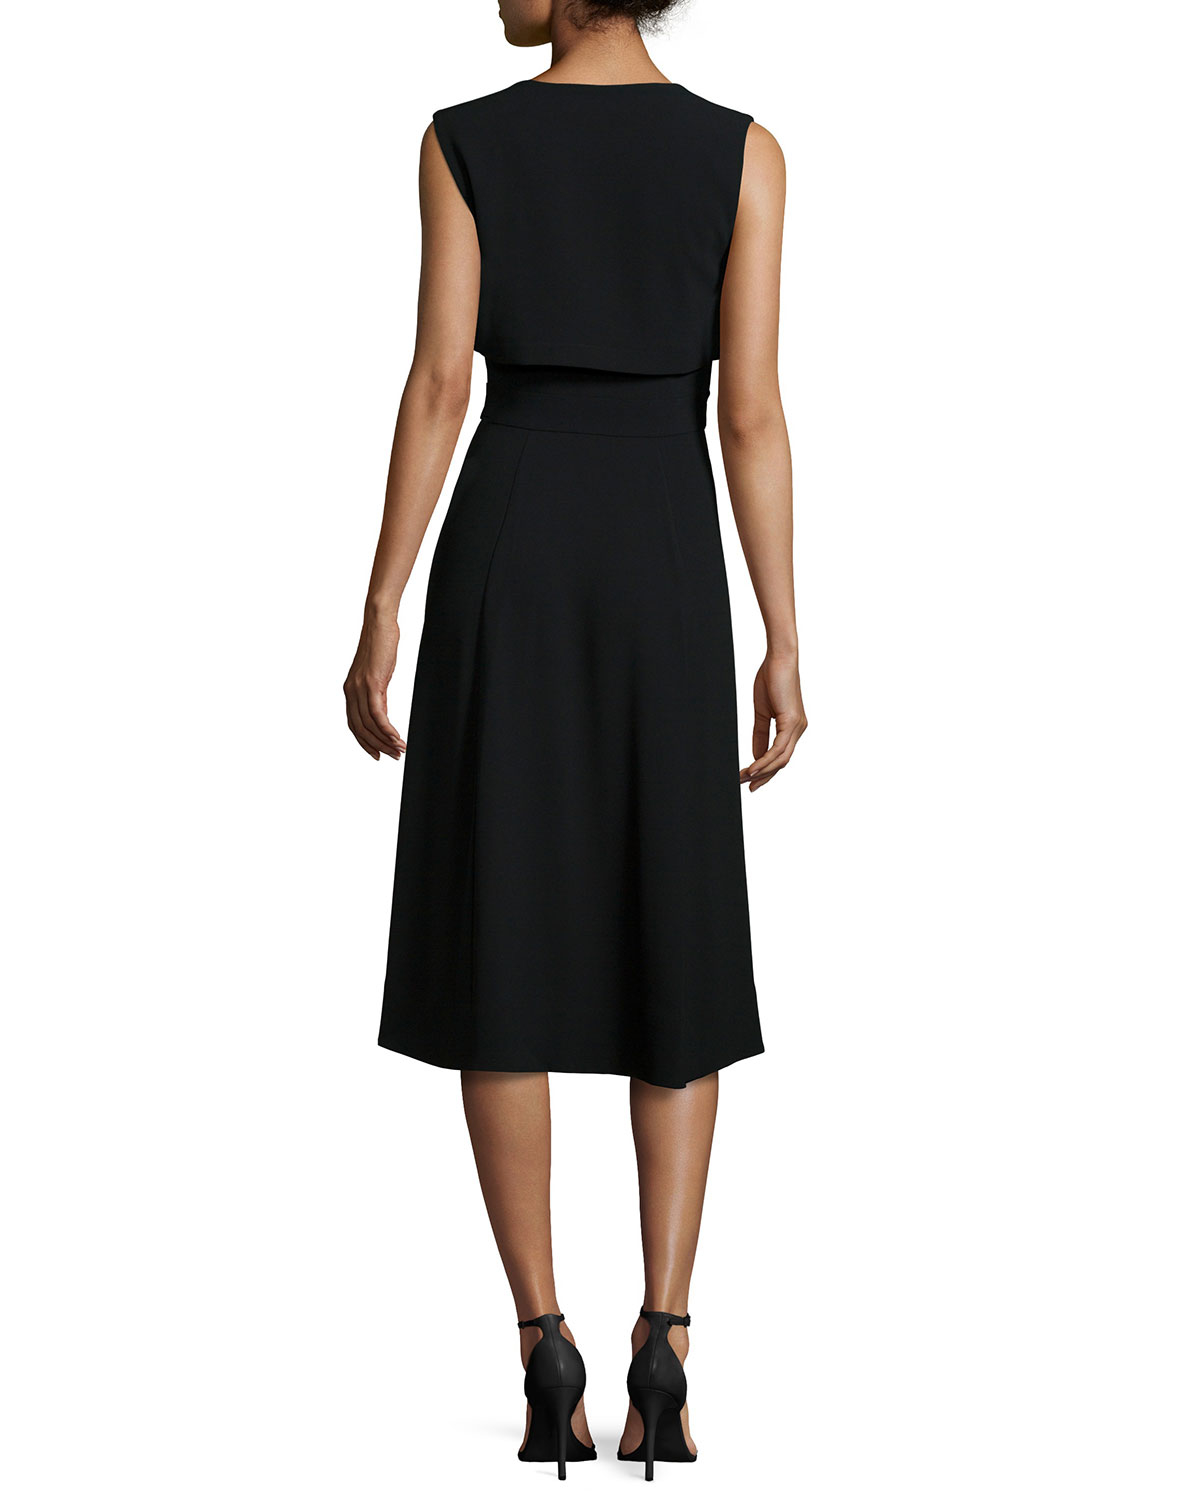 Dkny Sleeveless Zip Front Fit Amp Flare Dress In Black Lyst